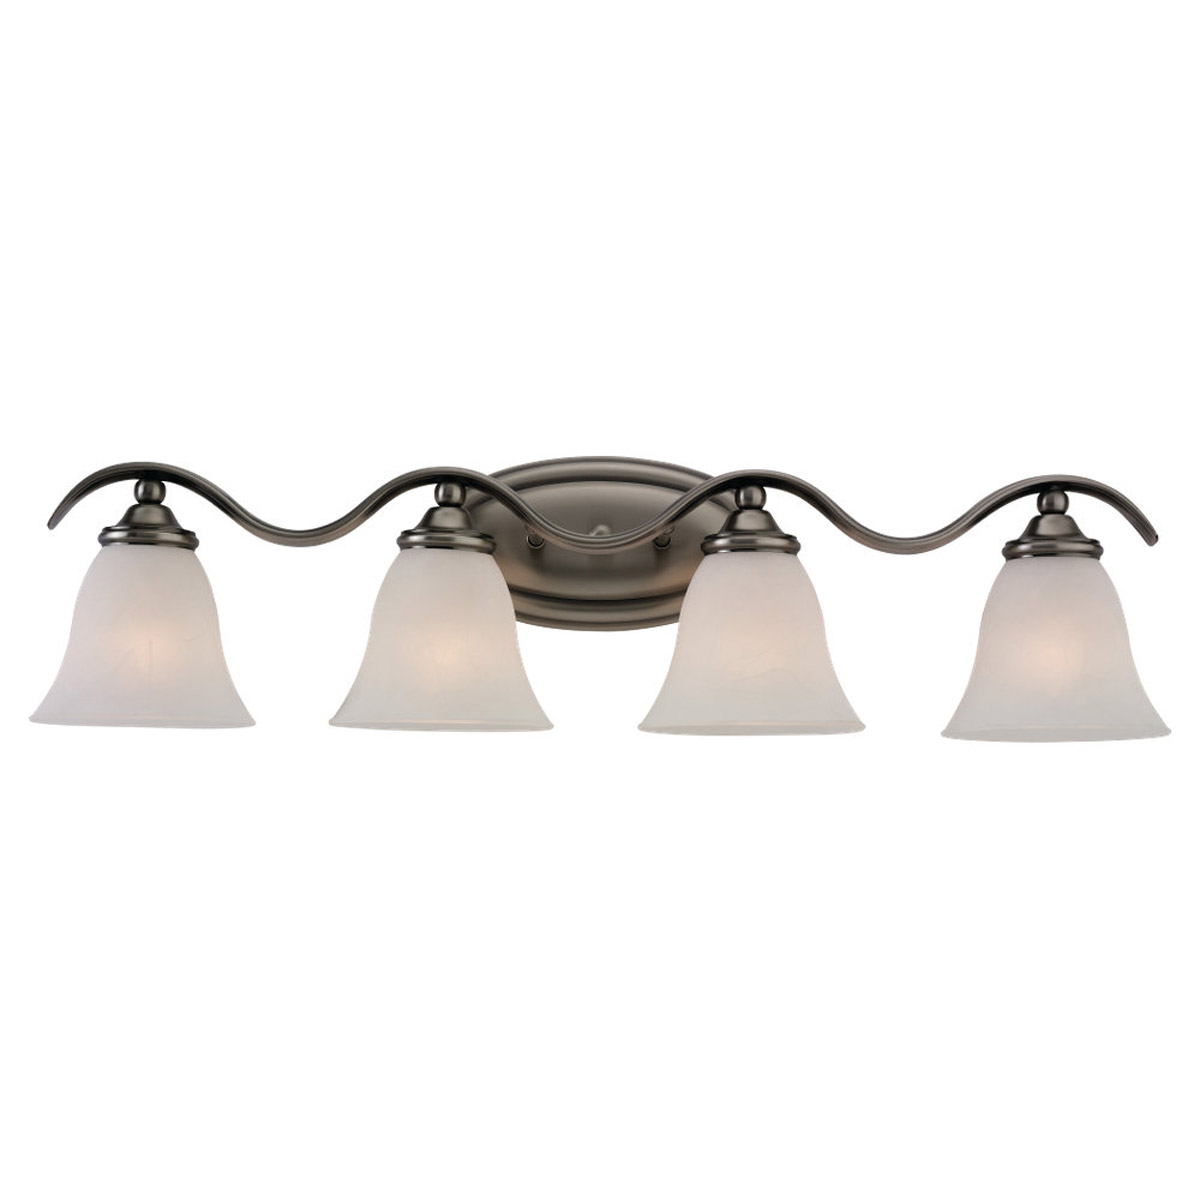 Sea Gull Lighting Rialto 4 Light Bath Vanity in Antique Brushed Nickel 44362-965 photo